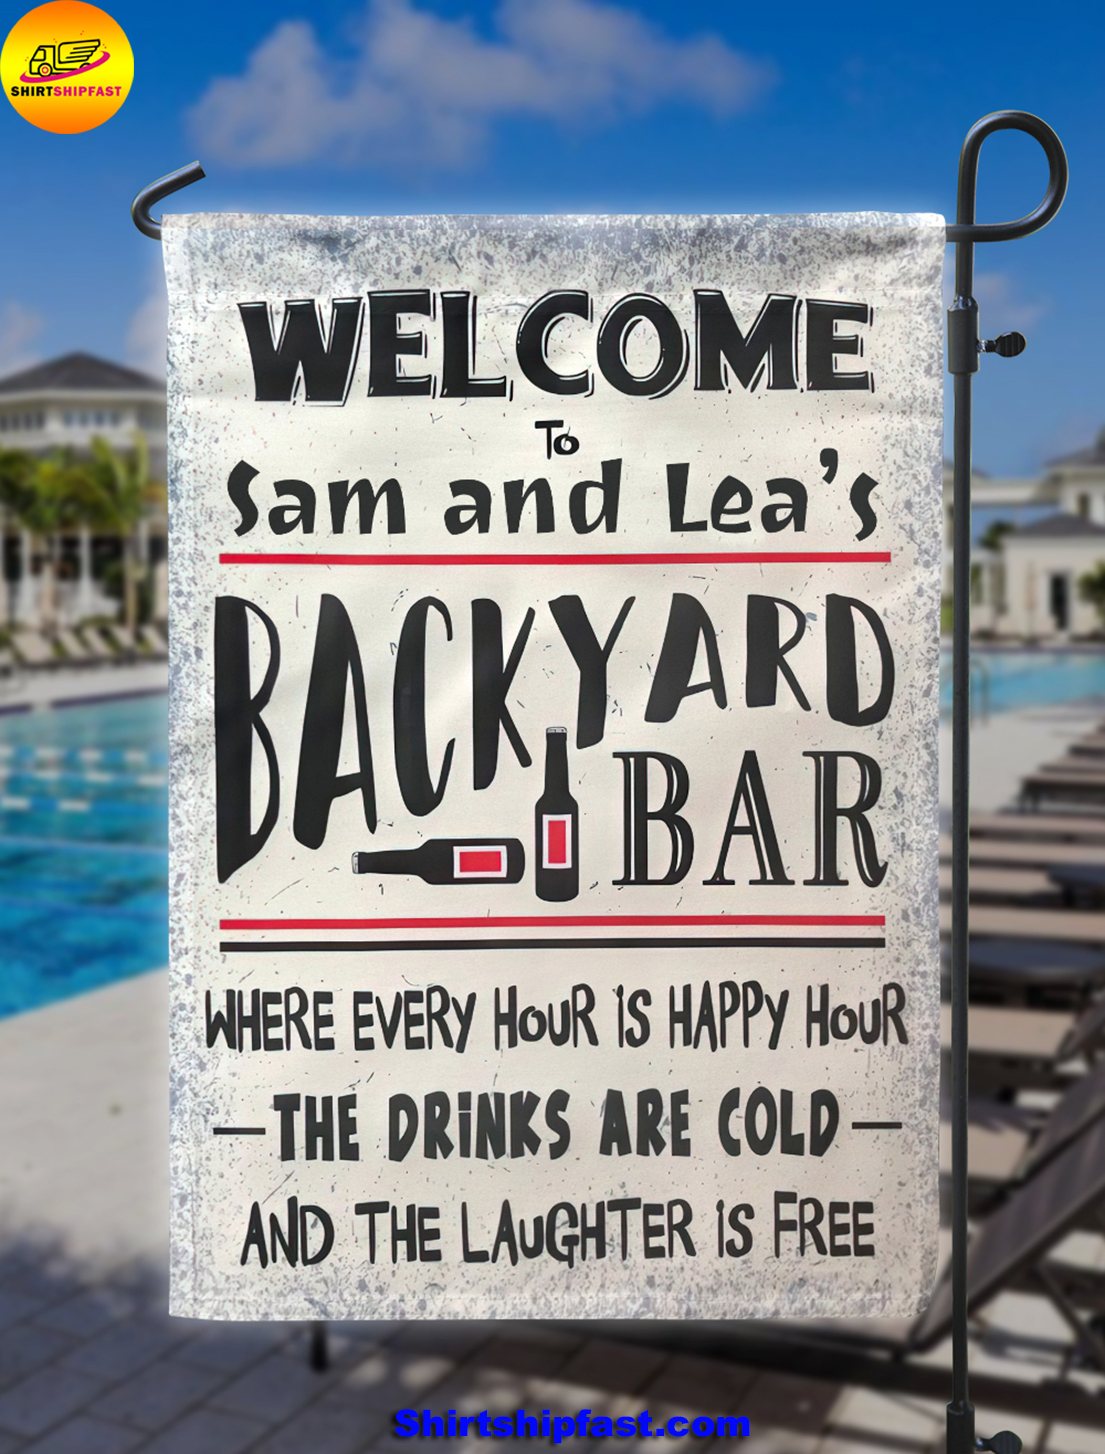 Personalized Welcome to backyard bar flag - Picture 1